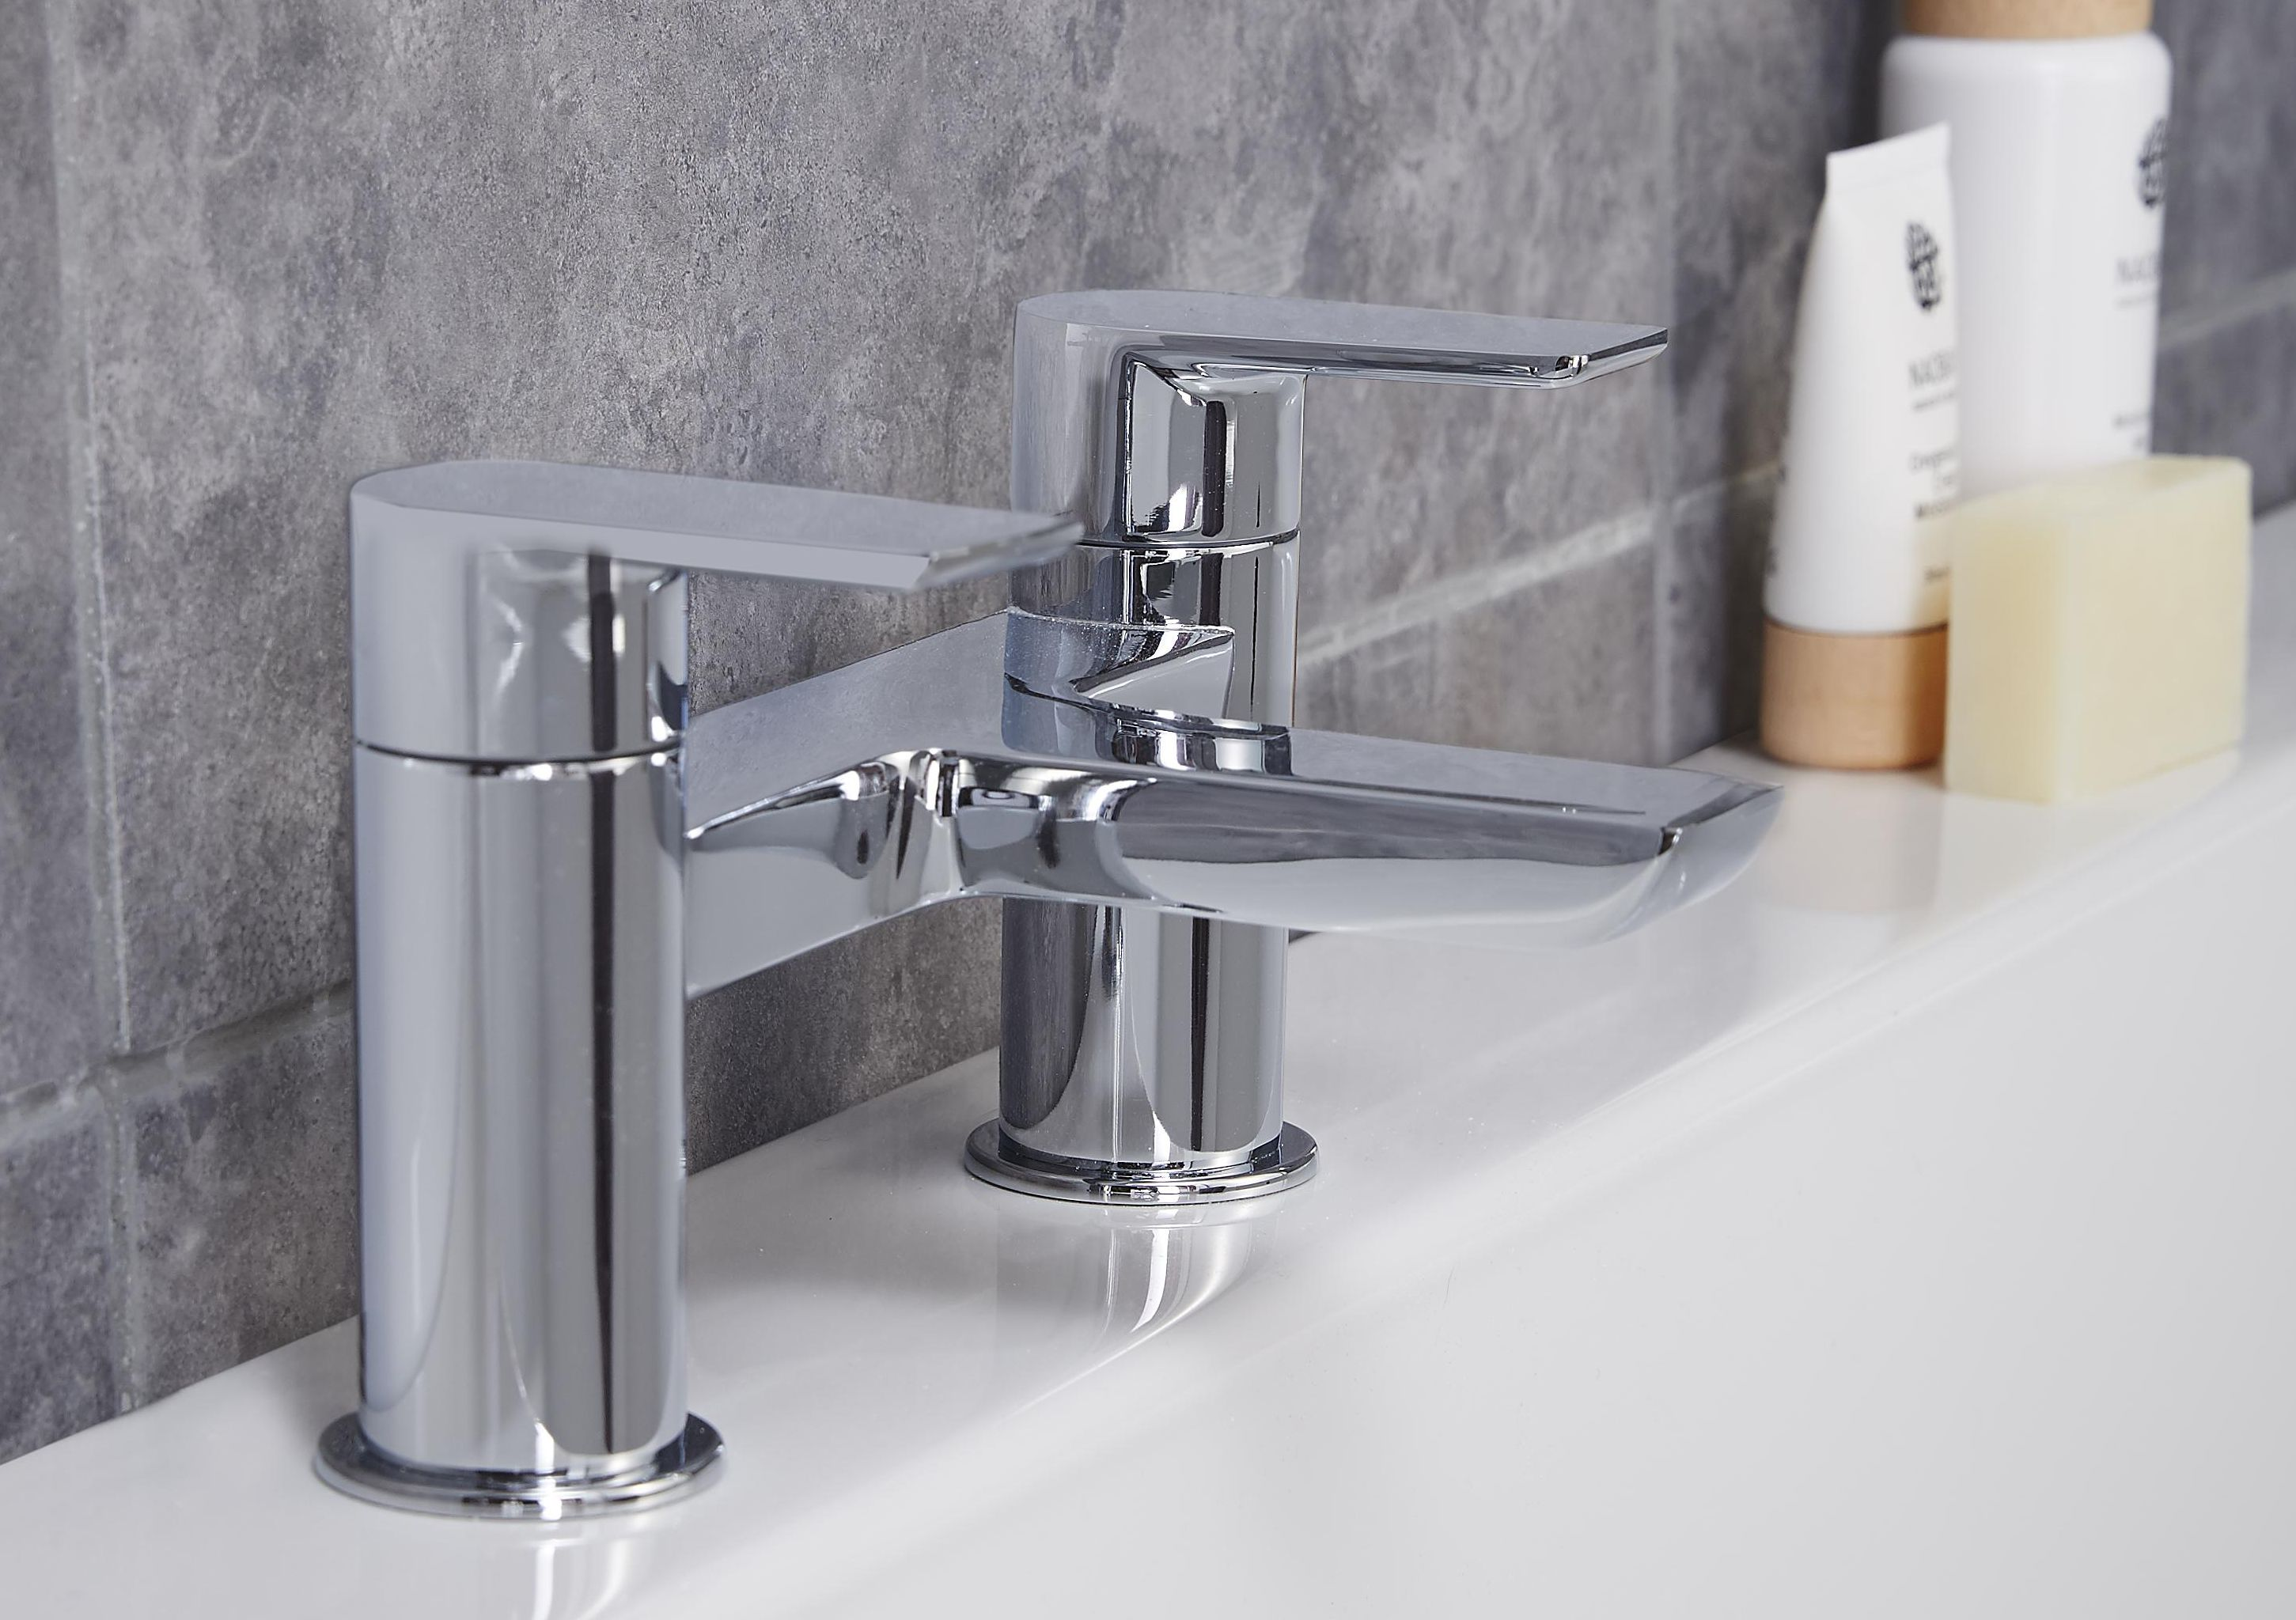 Bathroom Sinks B&Q bathroom taps | basin & bath taps | diy at b&q